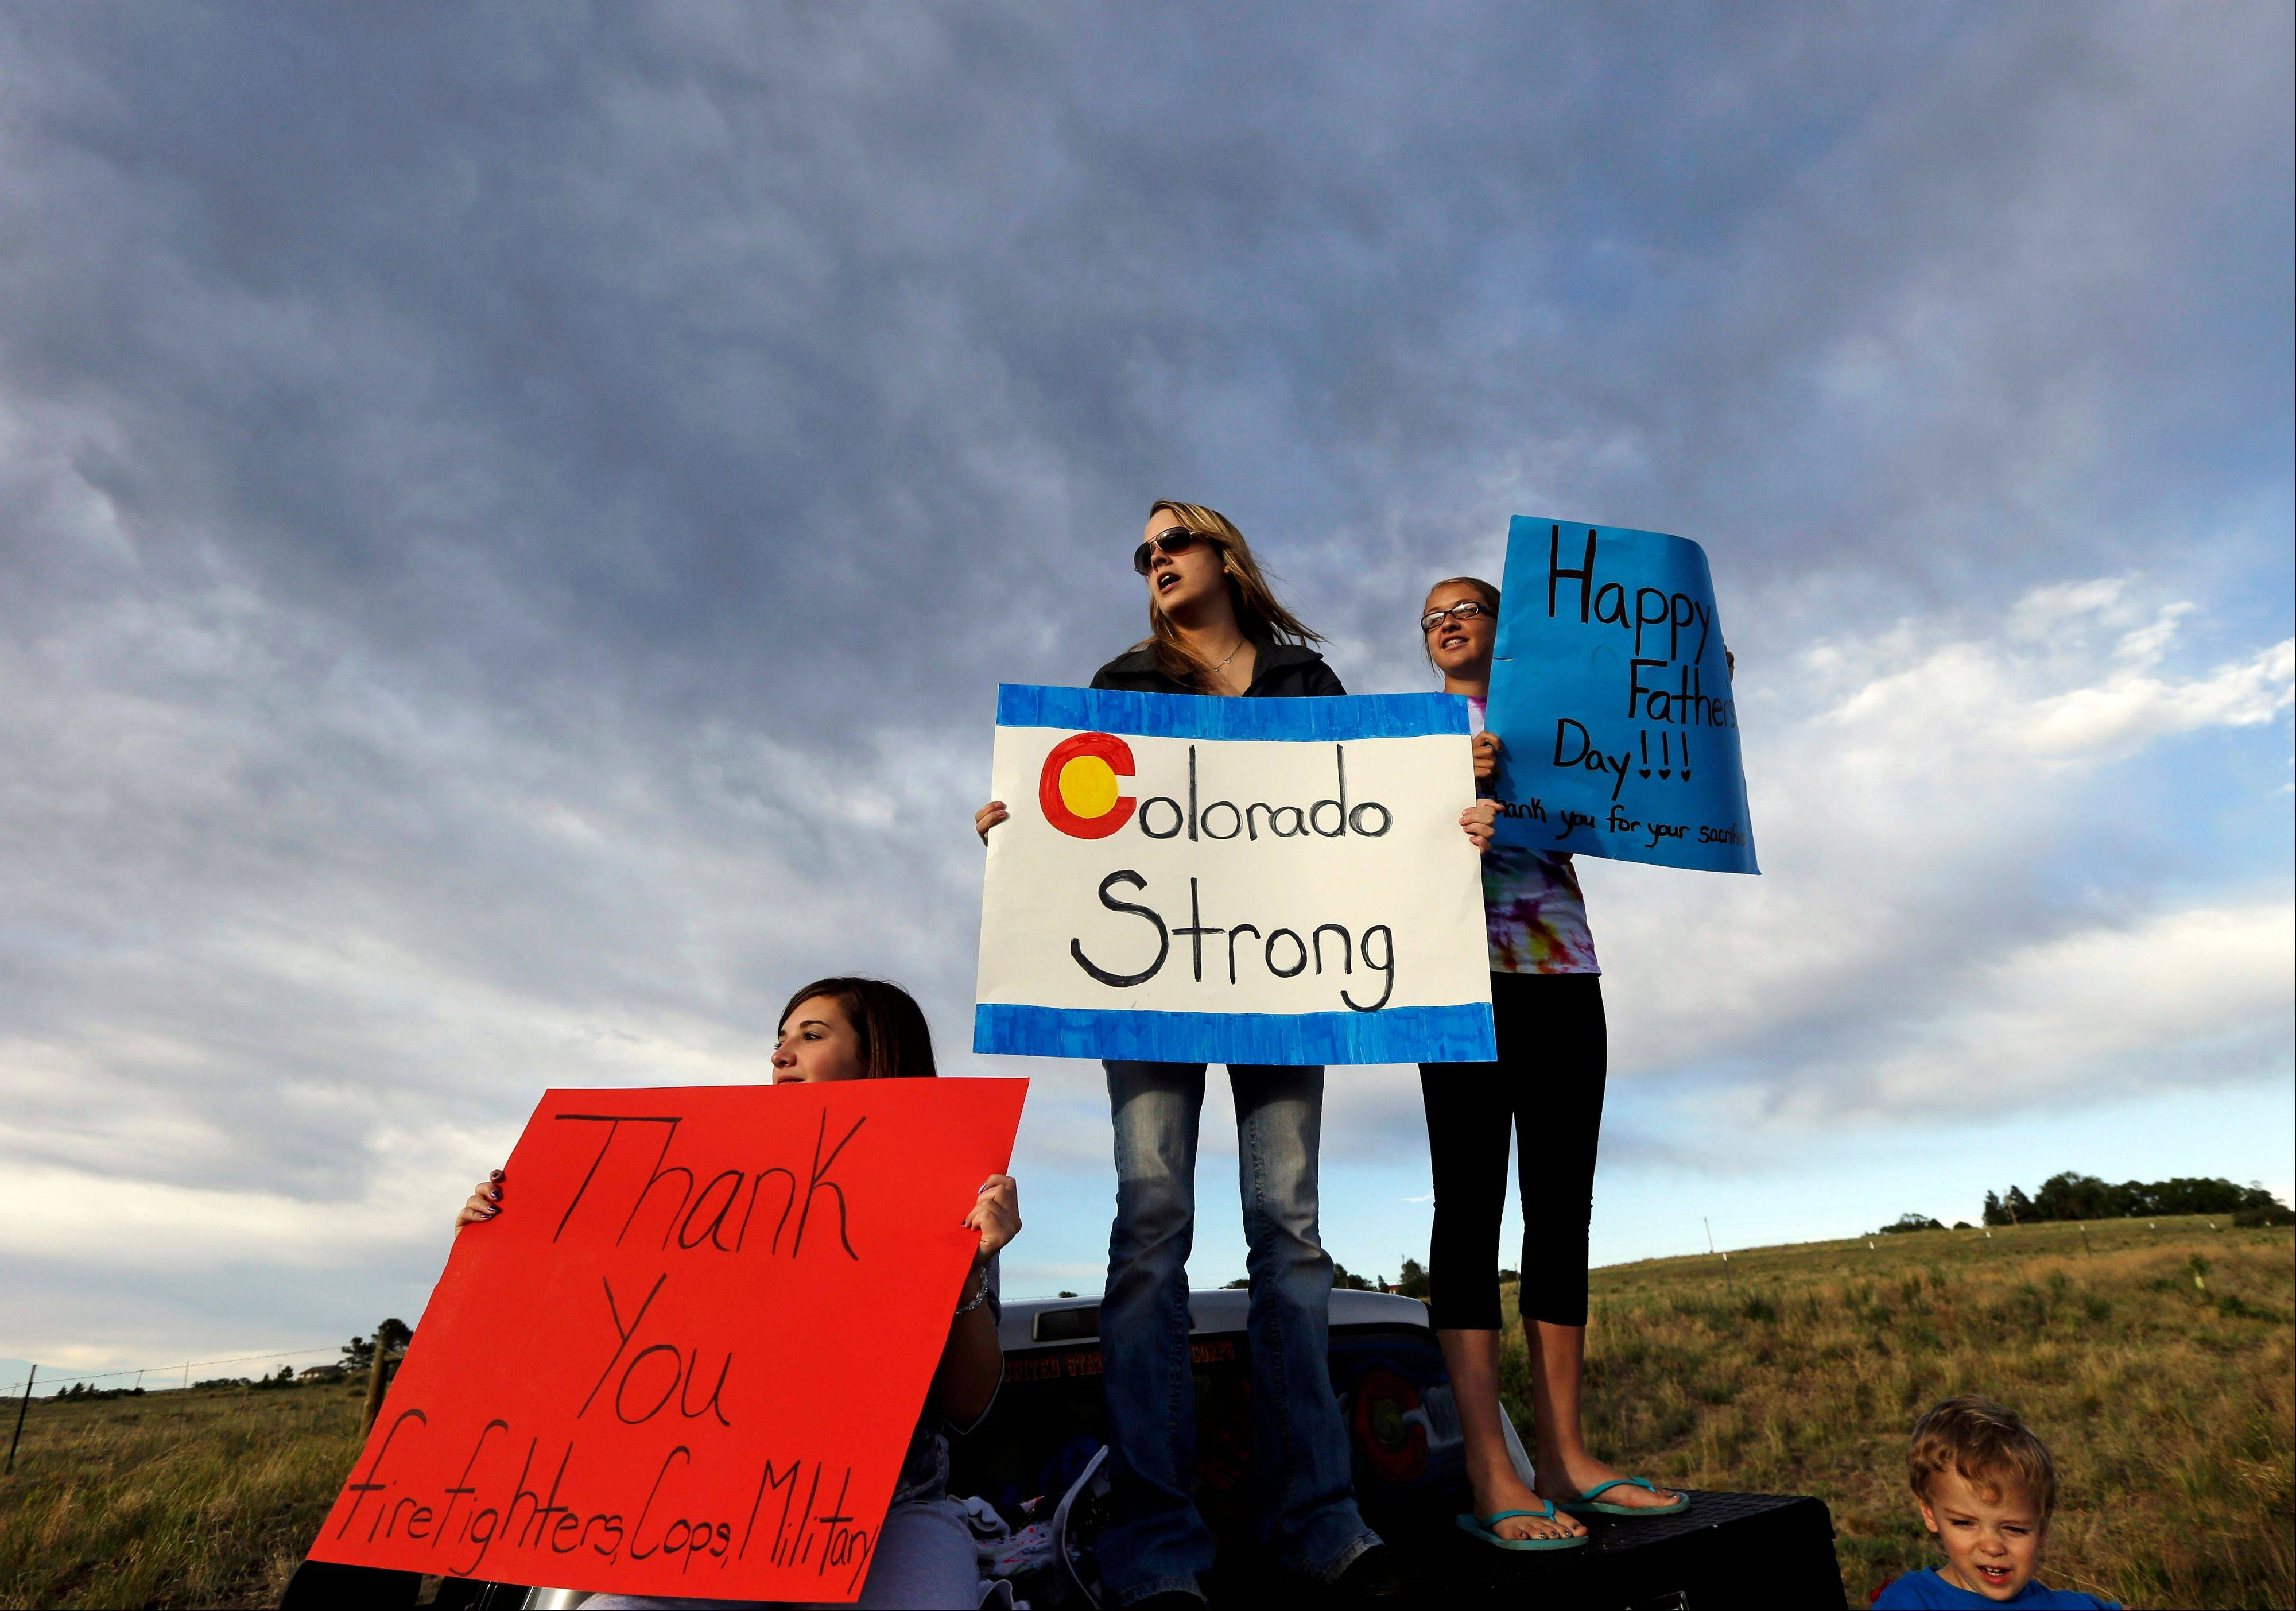 Black Forest resident Kristin Brown, left, who's family lost their home in the wildfire, is joined by Ashley Clipp, Kaitlyn Barlow and Ashley's son Jackson, 2, as they support first responders outside of a fire camp in Colorado Springs, Colo., Sunday.